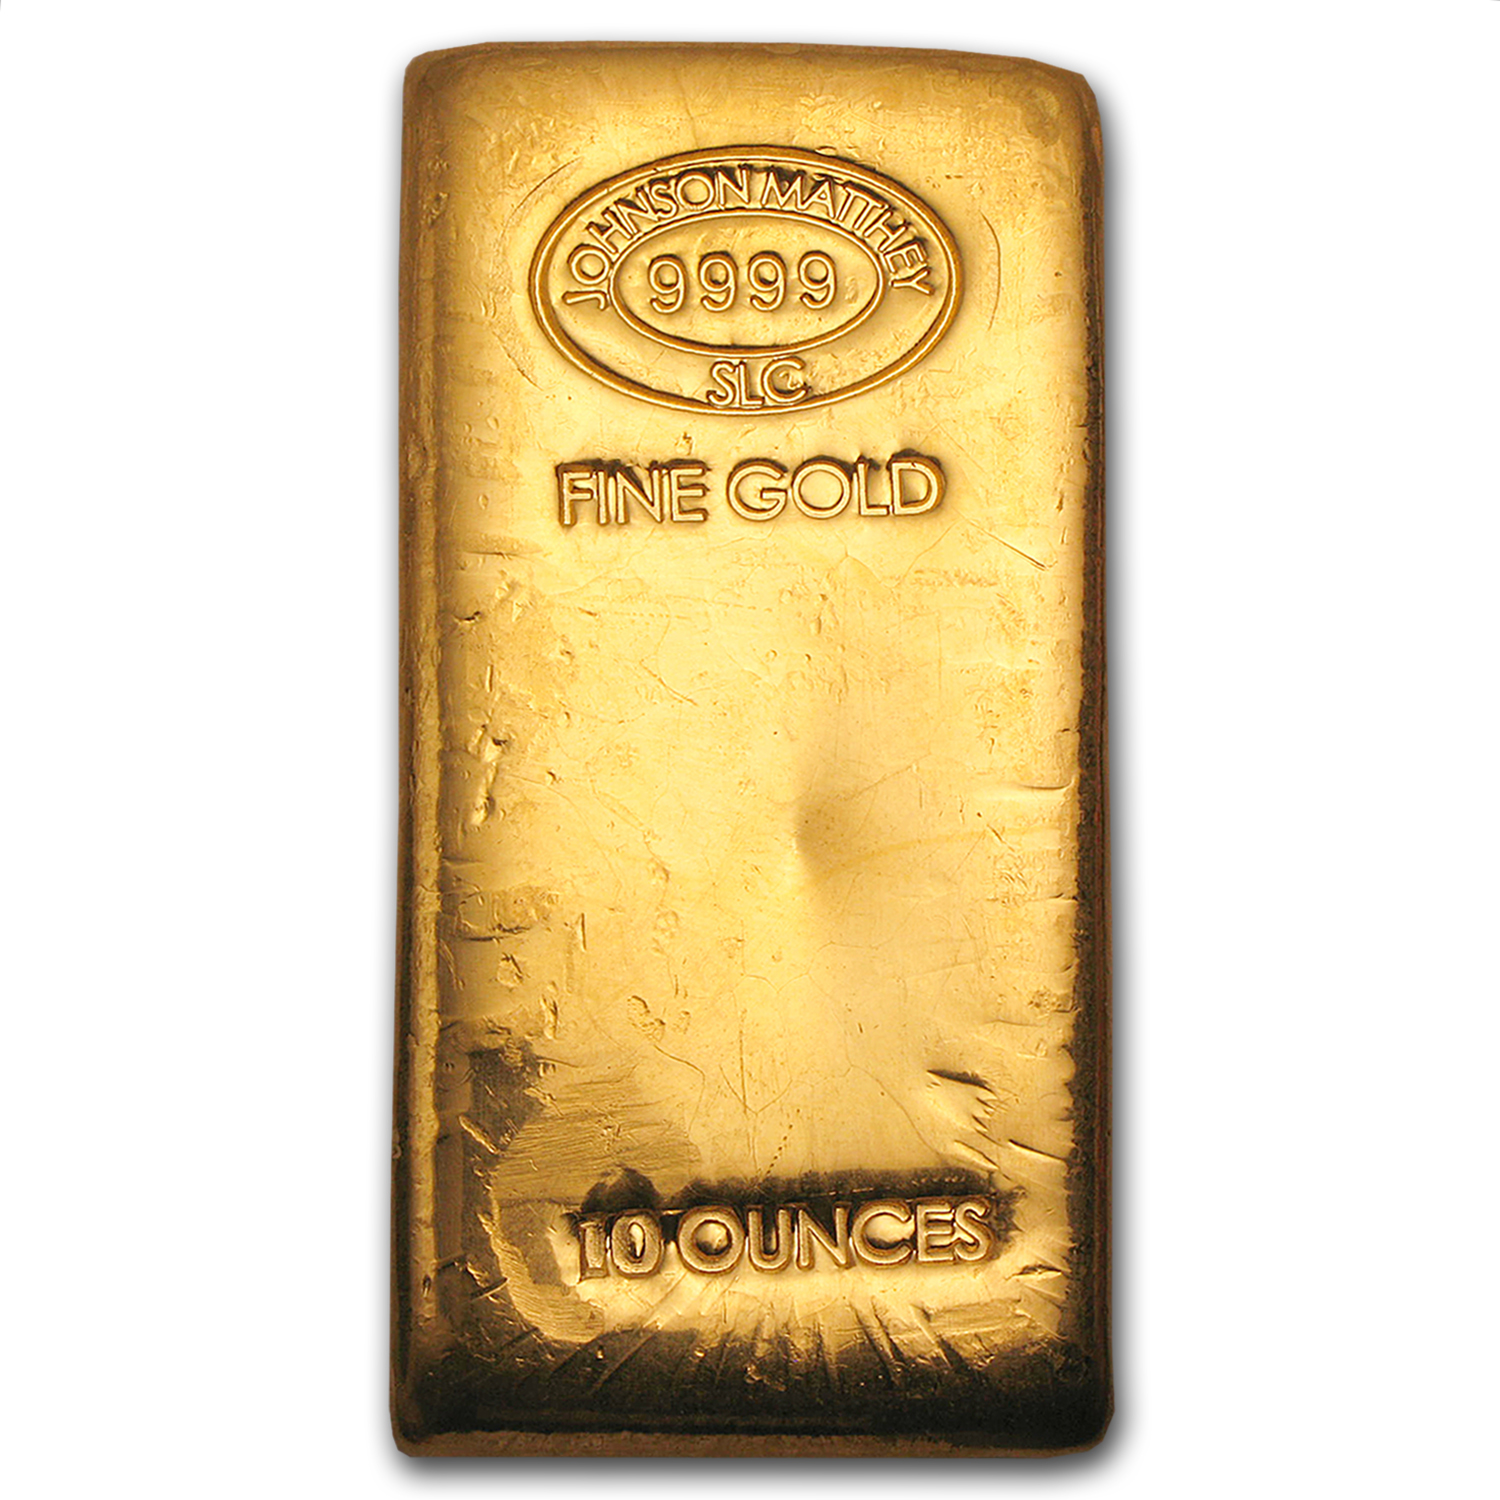 10 oz Gold Bar - Johnson Matthey (New, Poured)